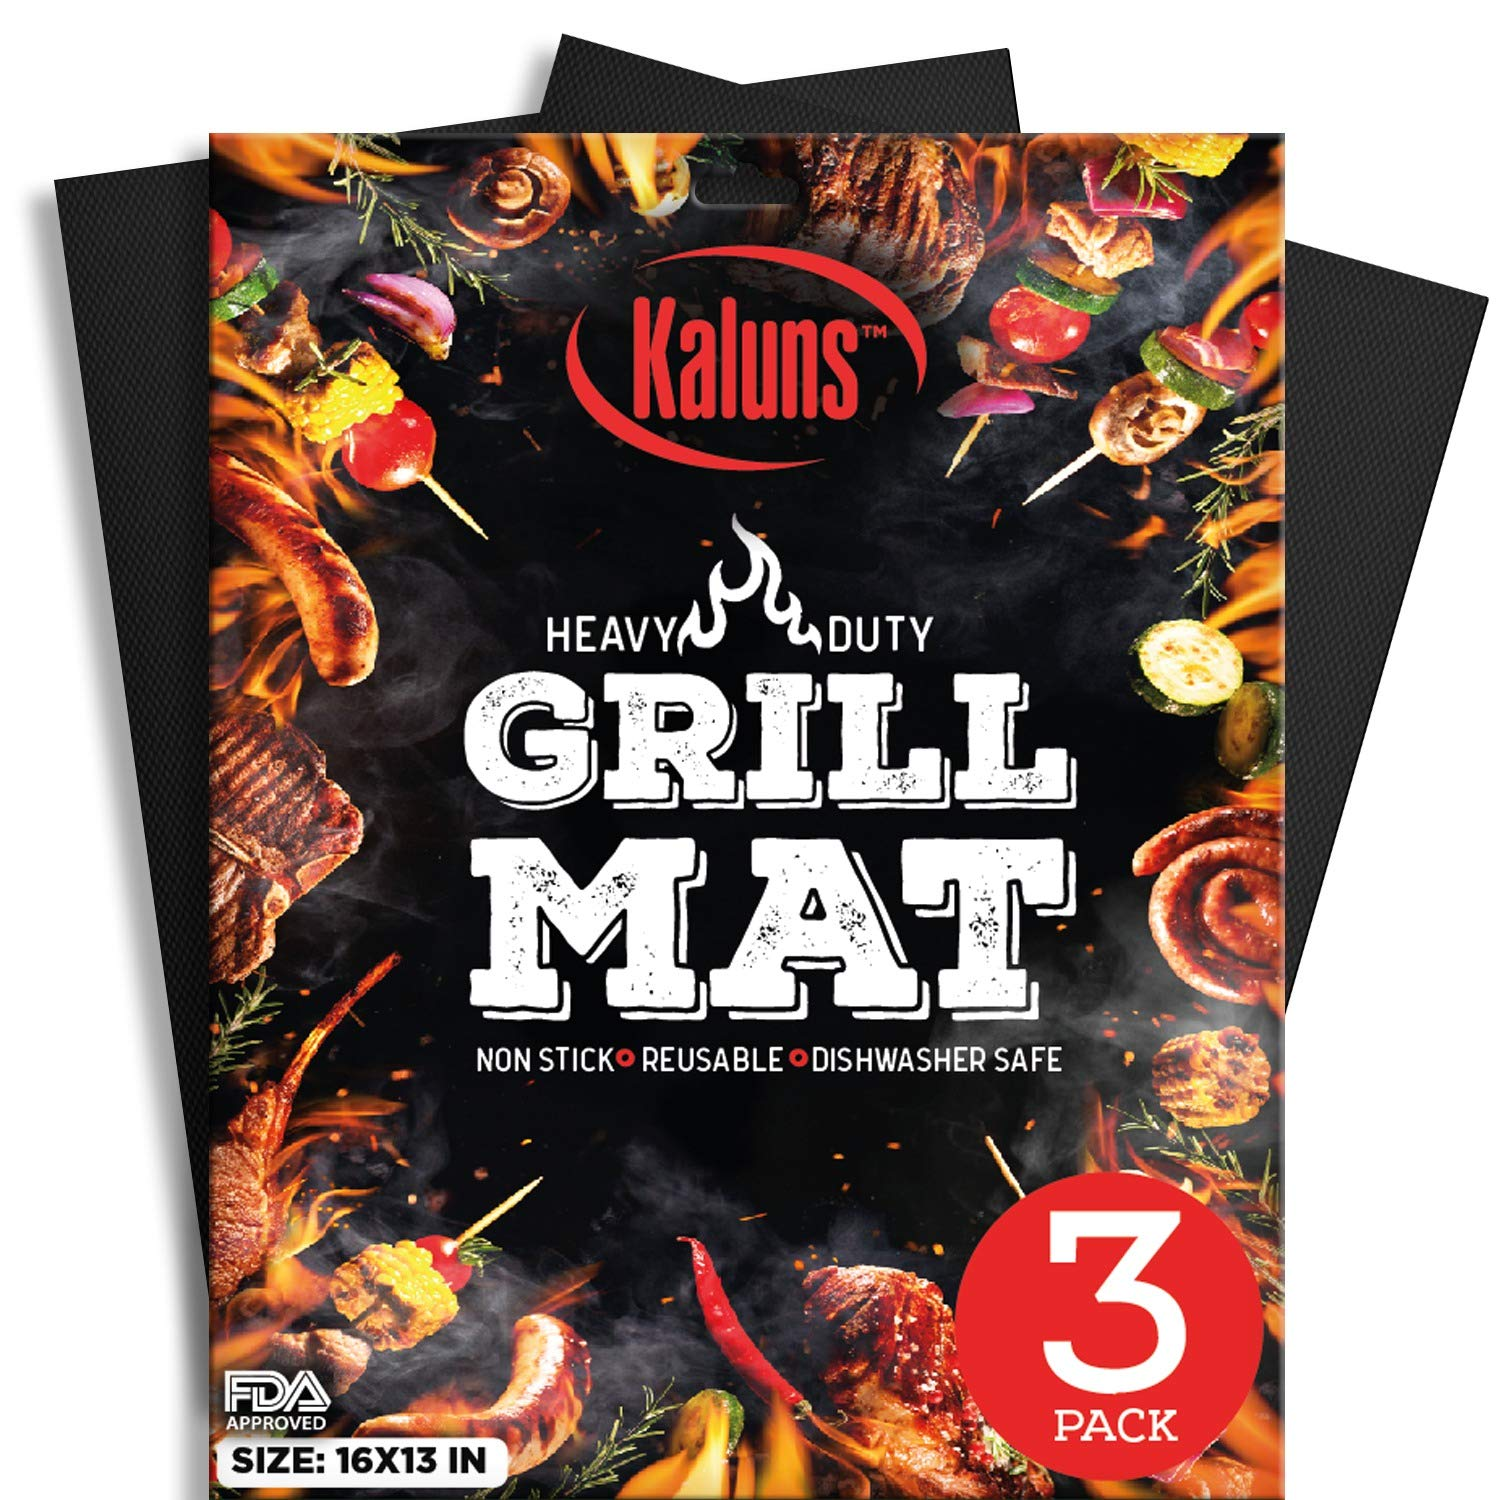 Kaluns Grill Mat, Best BBQ Mat - Heat Resistant up to 600 Degree - Nonstick, Reusable, Dishwasher Safe, Set of 3 by Kaluns